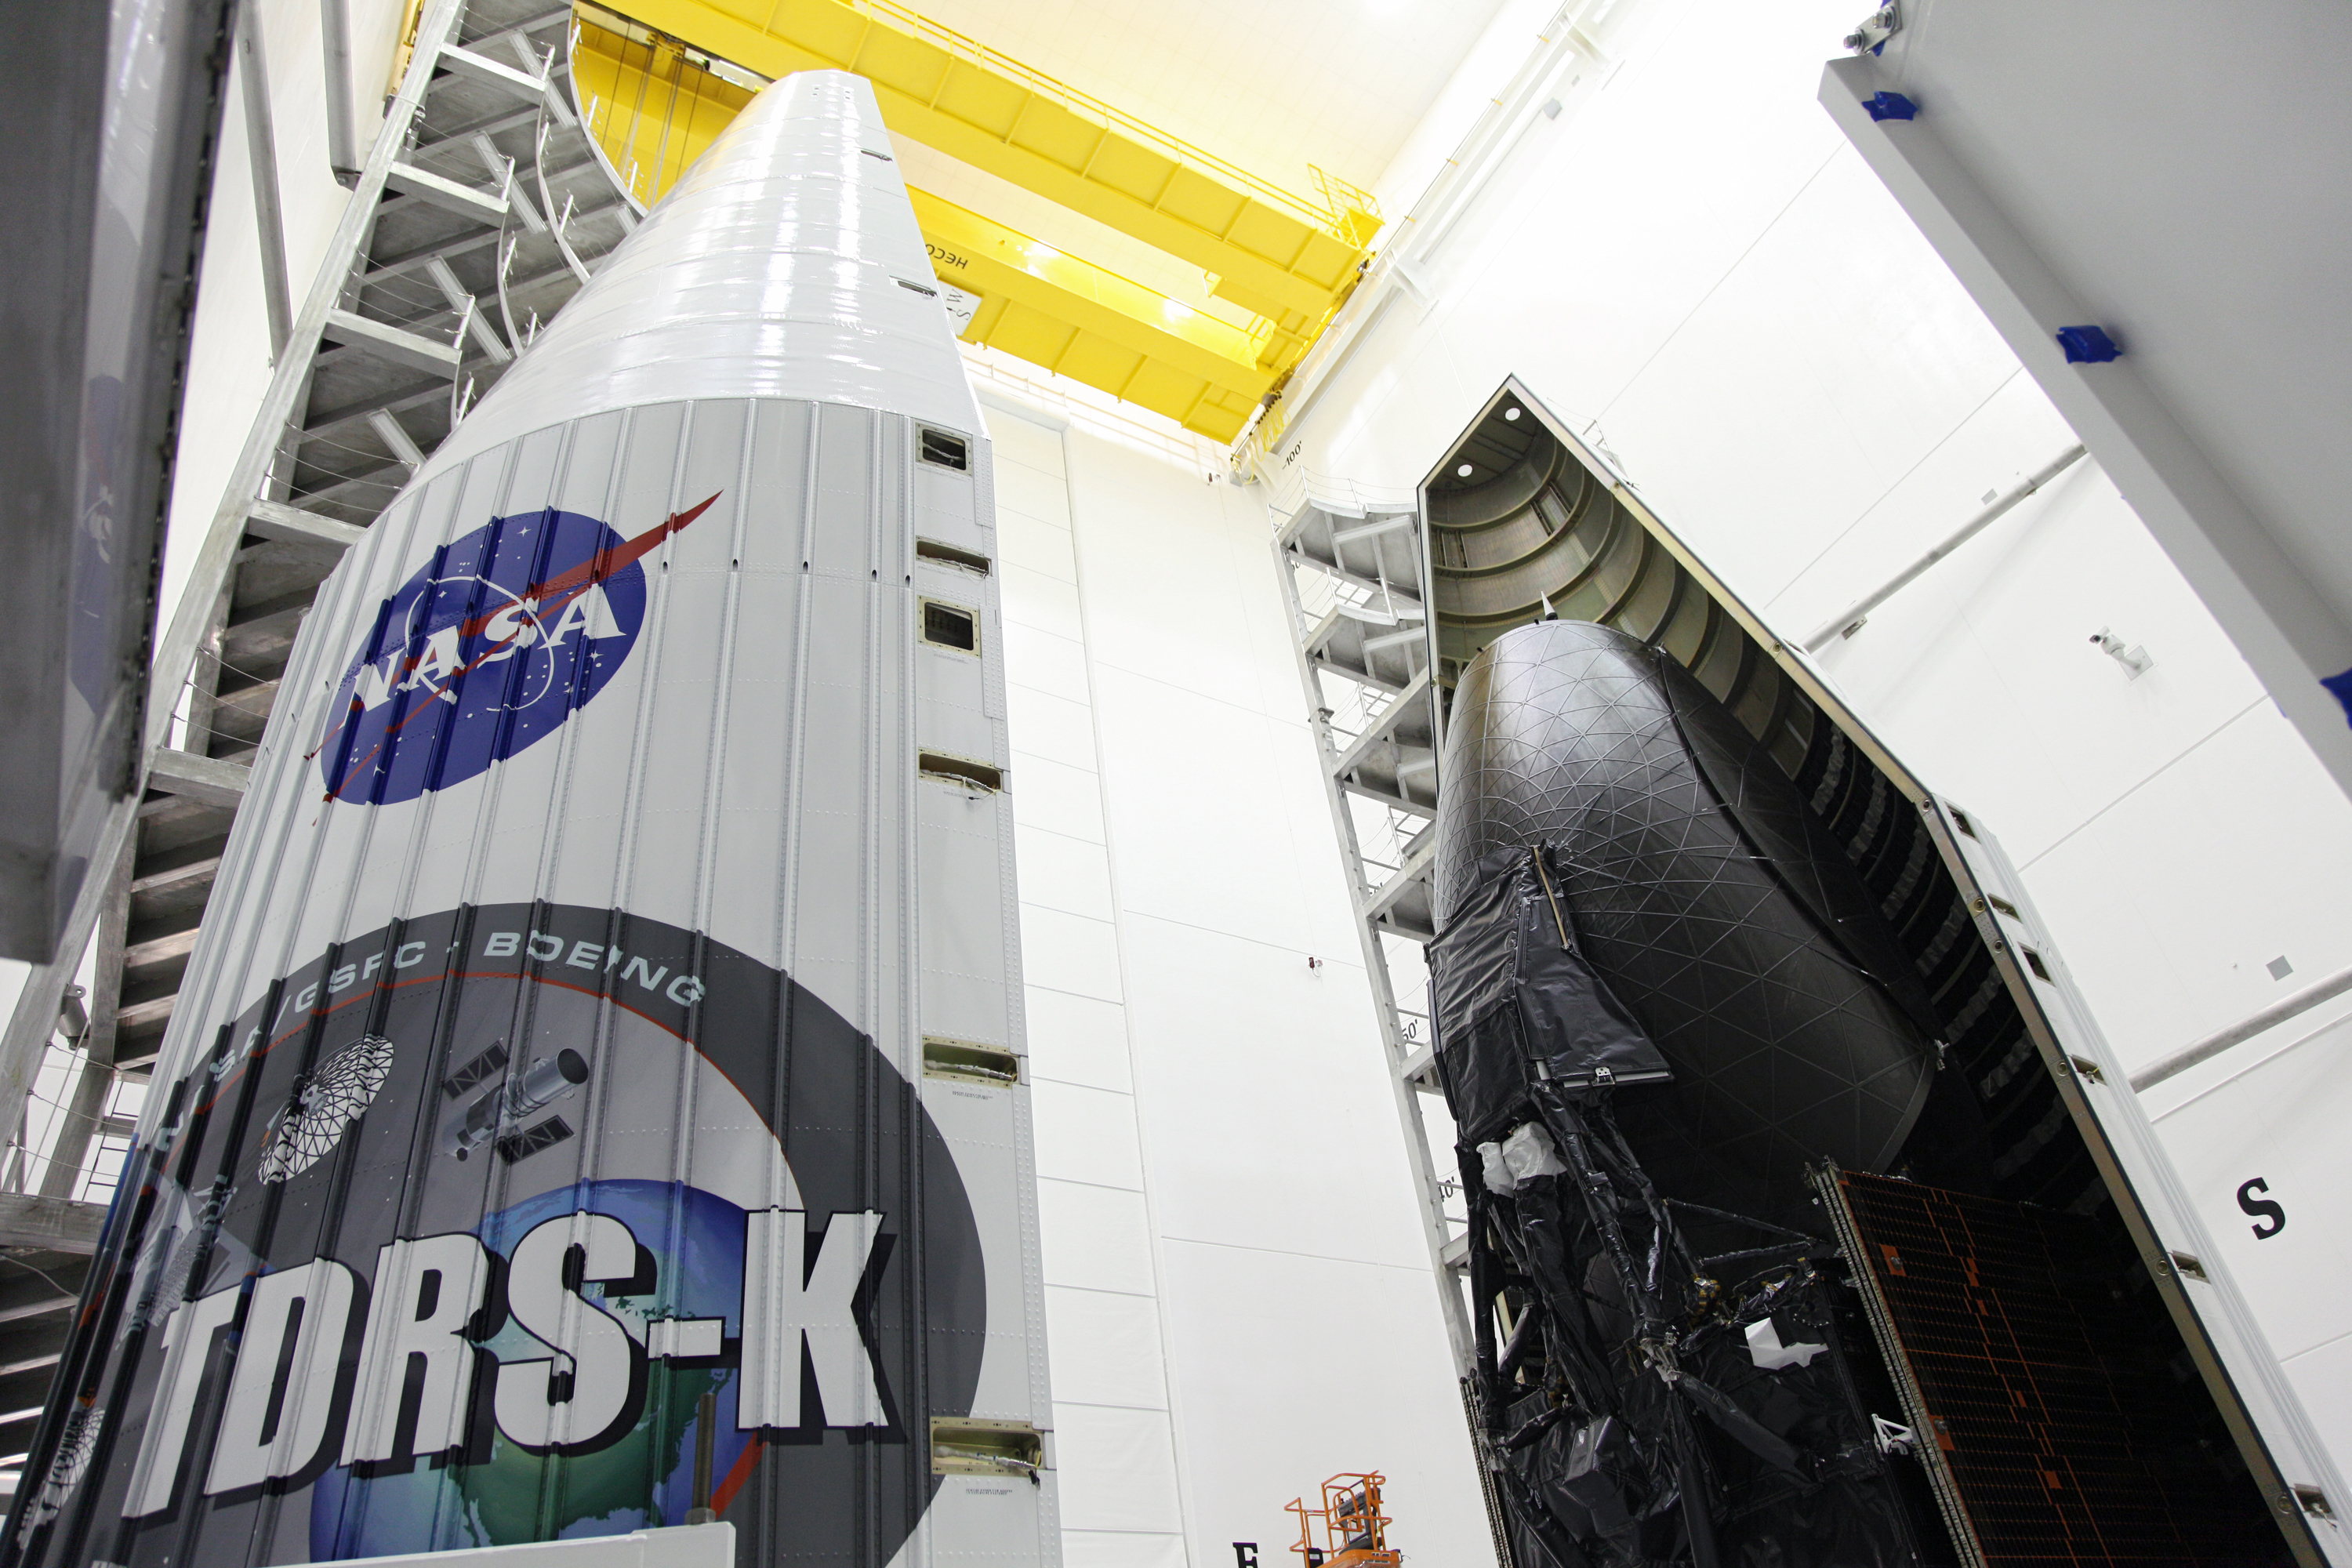 TDRS-K Spacecraft